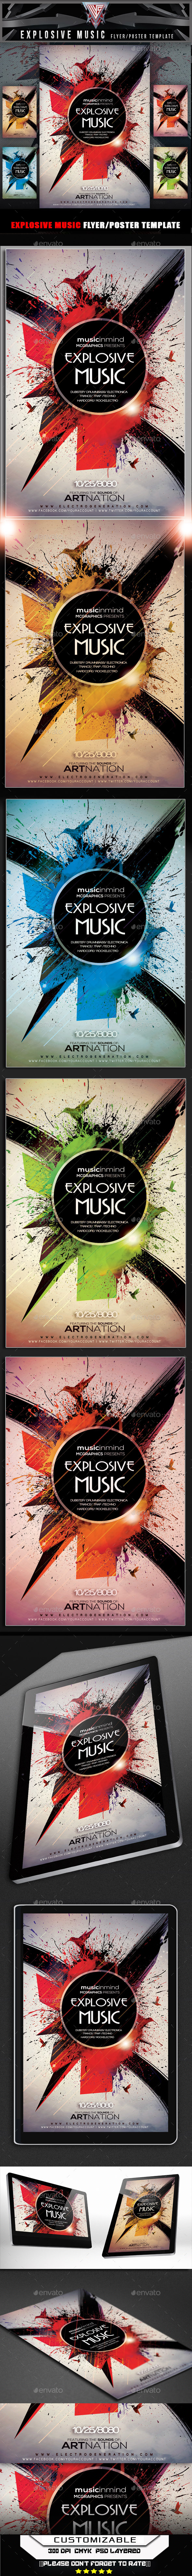 Exploded Music Flyer Template - Flyers Print Templates